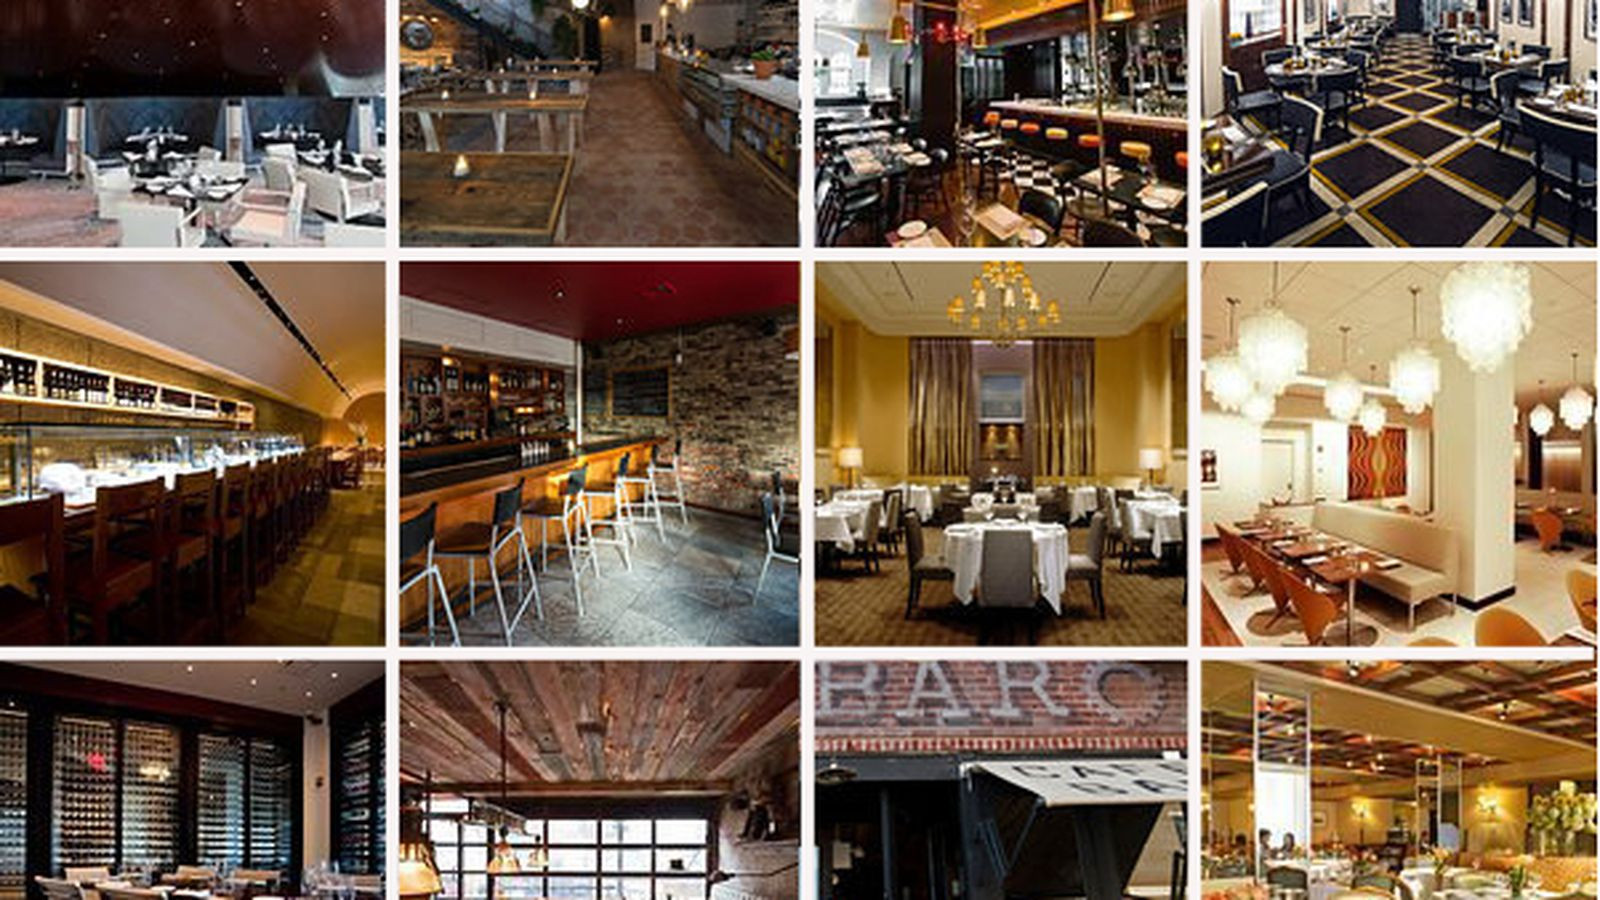 Easter Sunday Dinner Restaurants  12 Solid Dining Options for Easter Sunday in NYC Eater NY